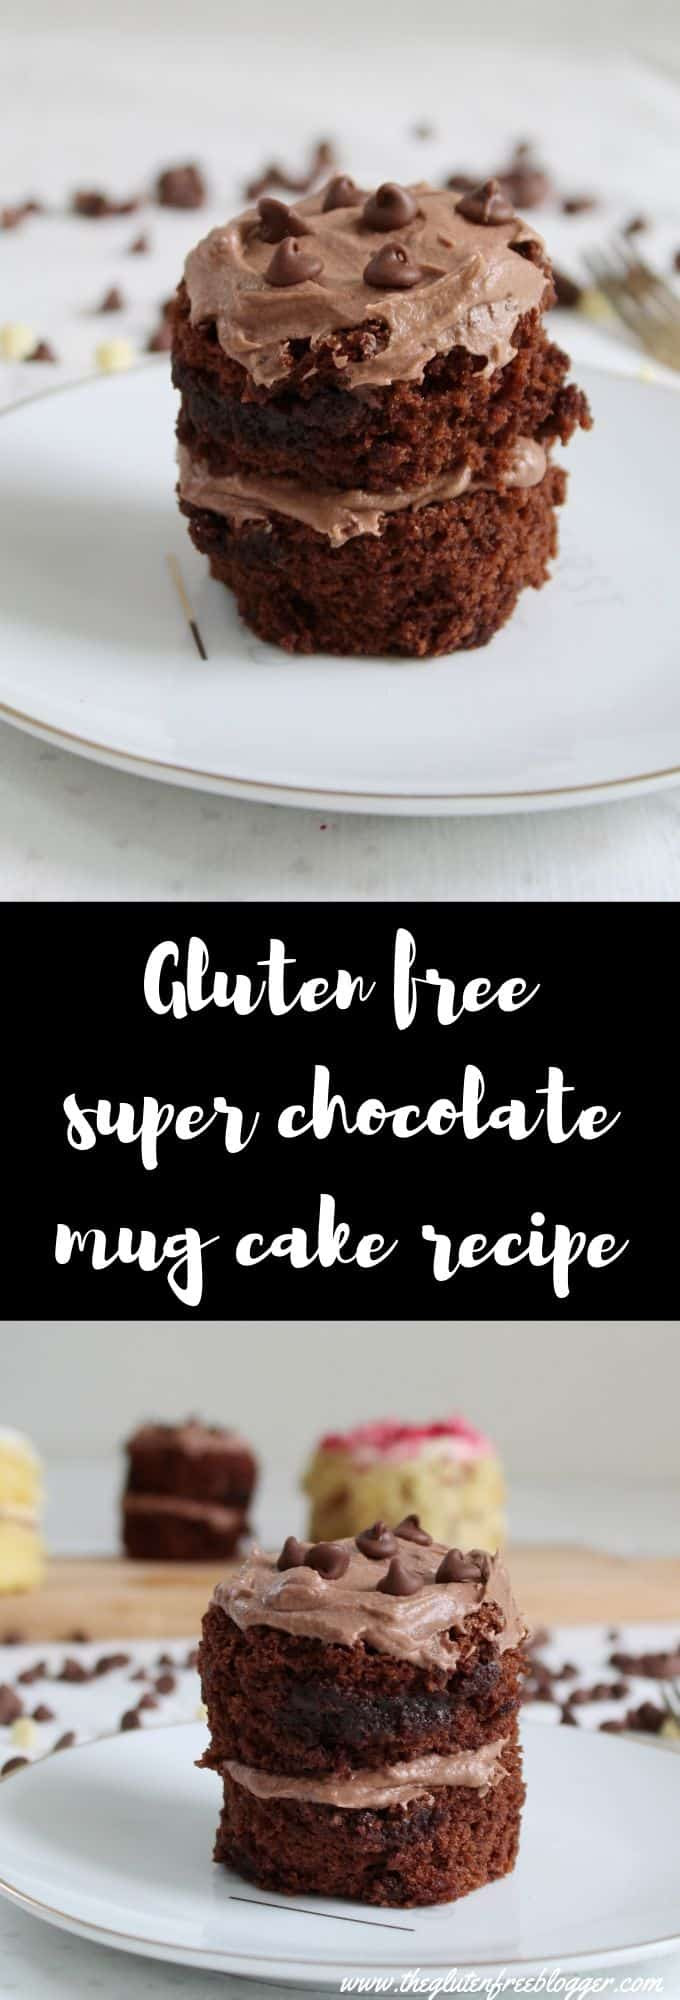 gluten free mug cake recipes - easy mug cake - coeliac ...